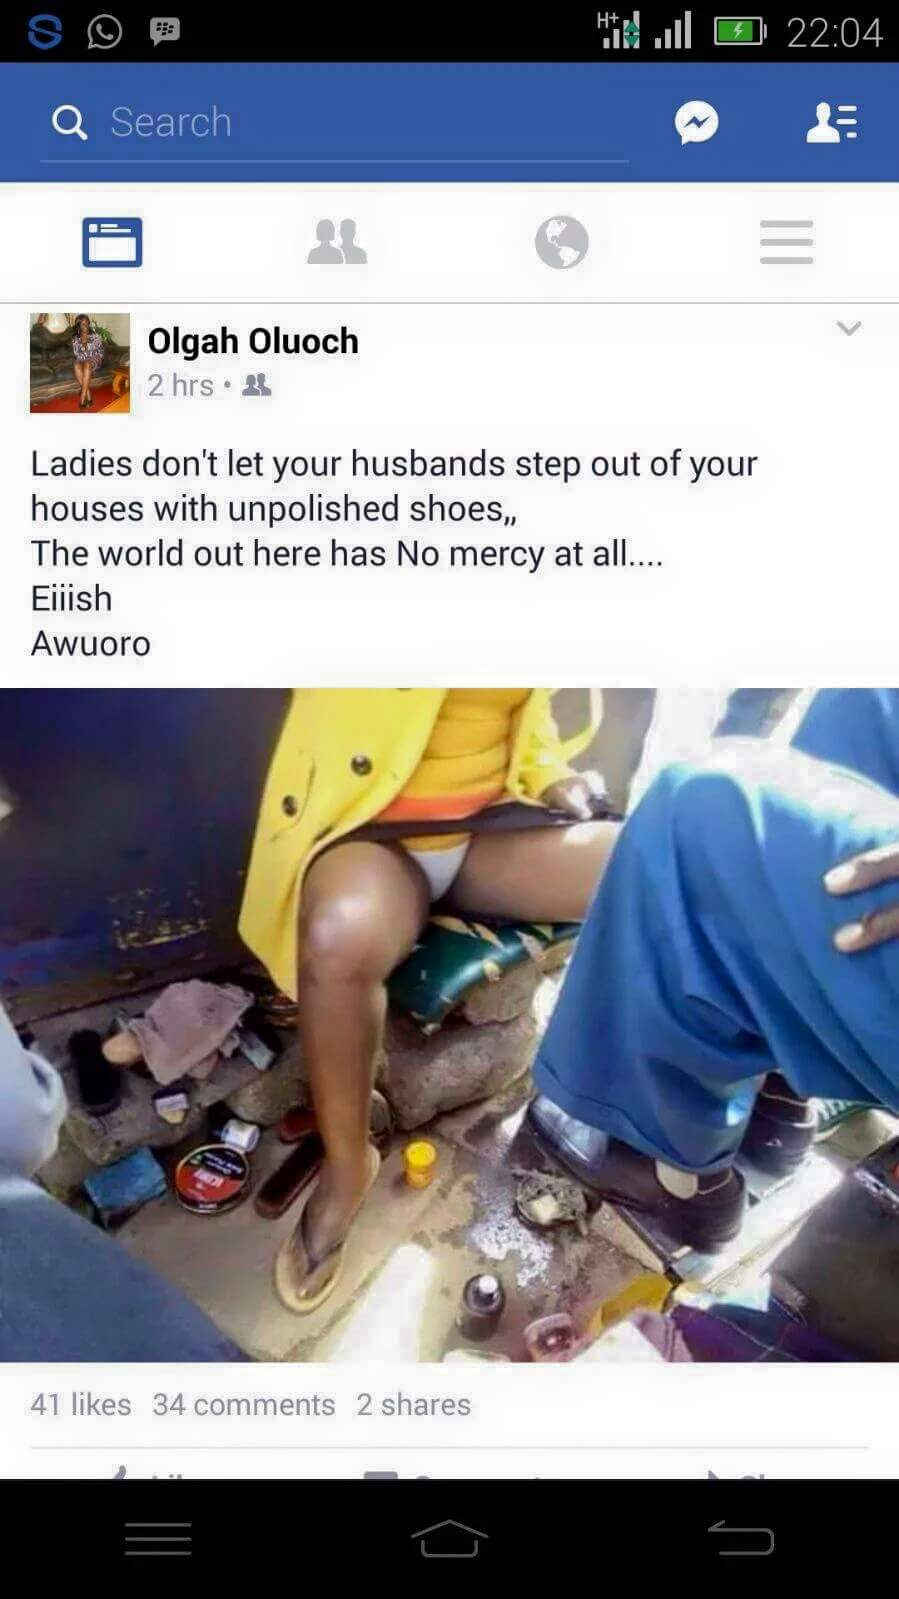 DON'T LET YOUR HUSBAND LEAVE HOME WITH UNPOLISHED SHOES!!WORLD IS RUTHLESS